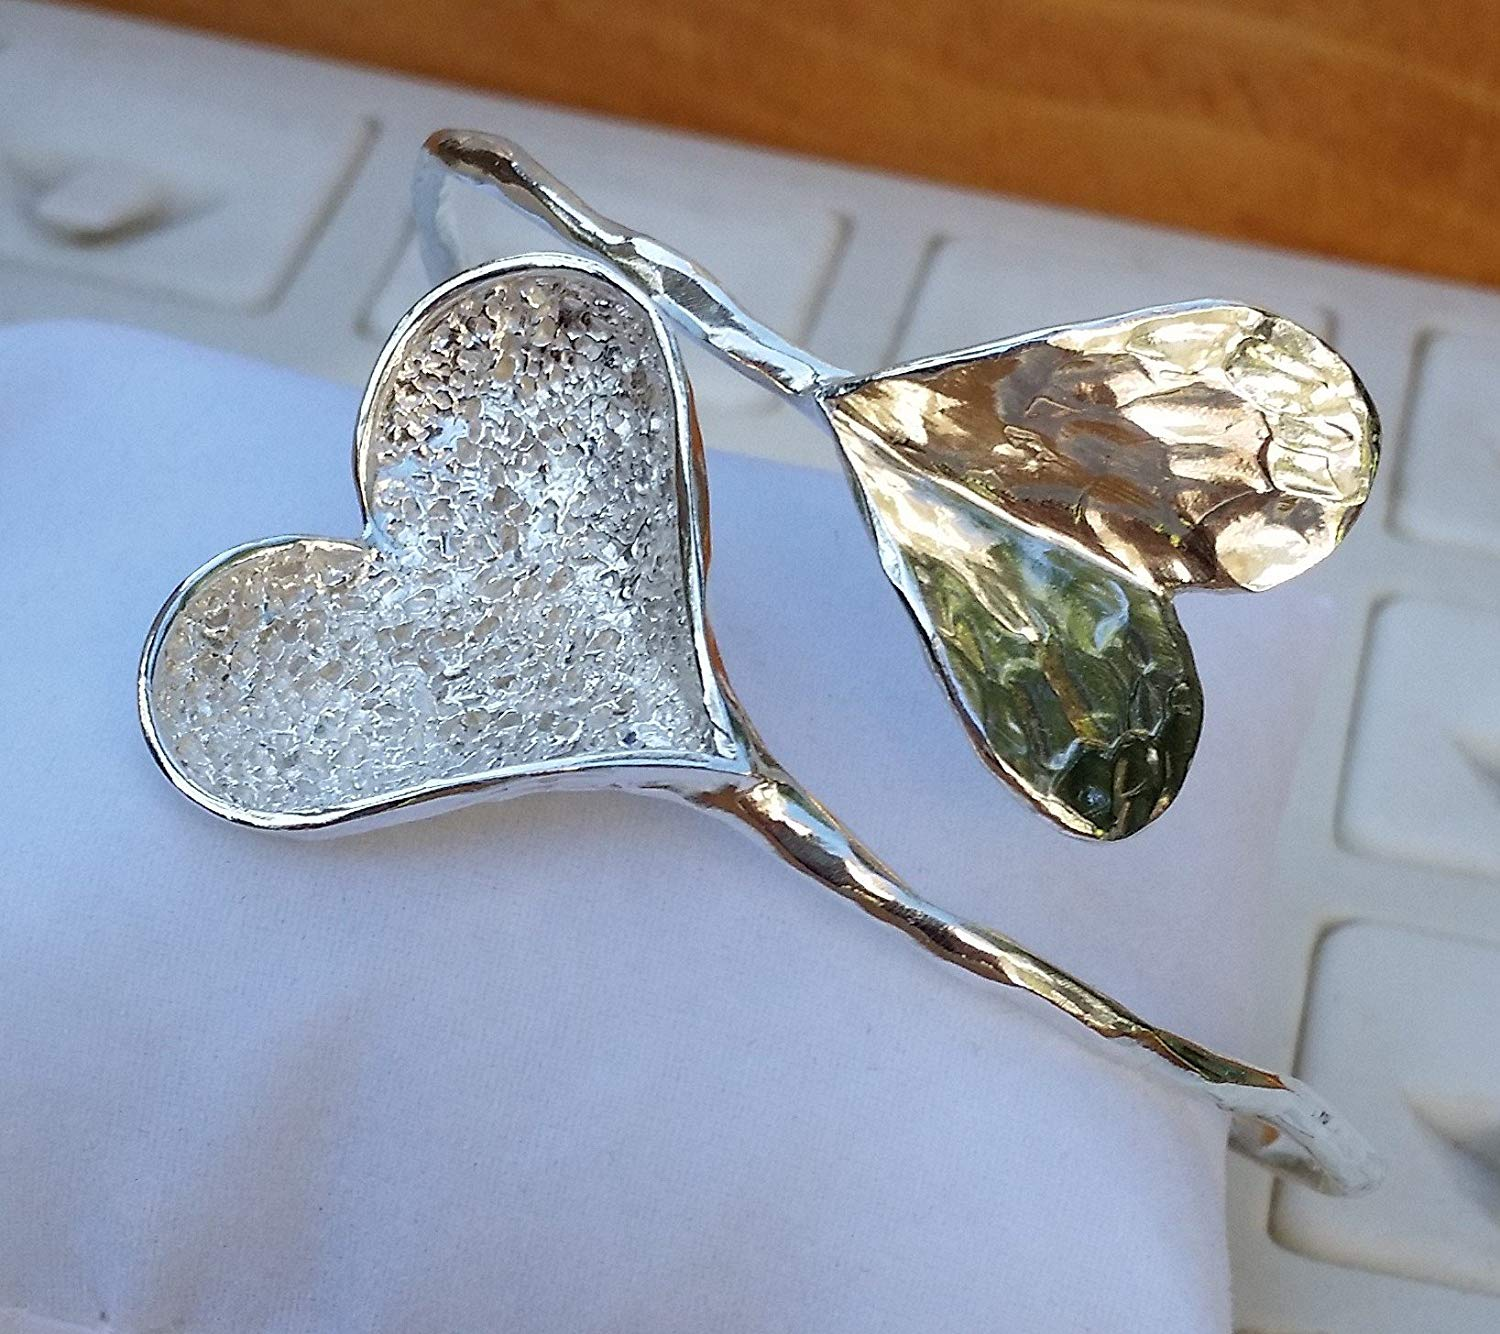 Heart Silver Bangle ,Unique Silver Bangle ,Sterling Silver 925 Bangle ,Handmade Silver Bangle ,Bridal Silver Bangle ,Wedding Silver Bangle Silver Heart